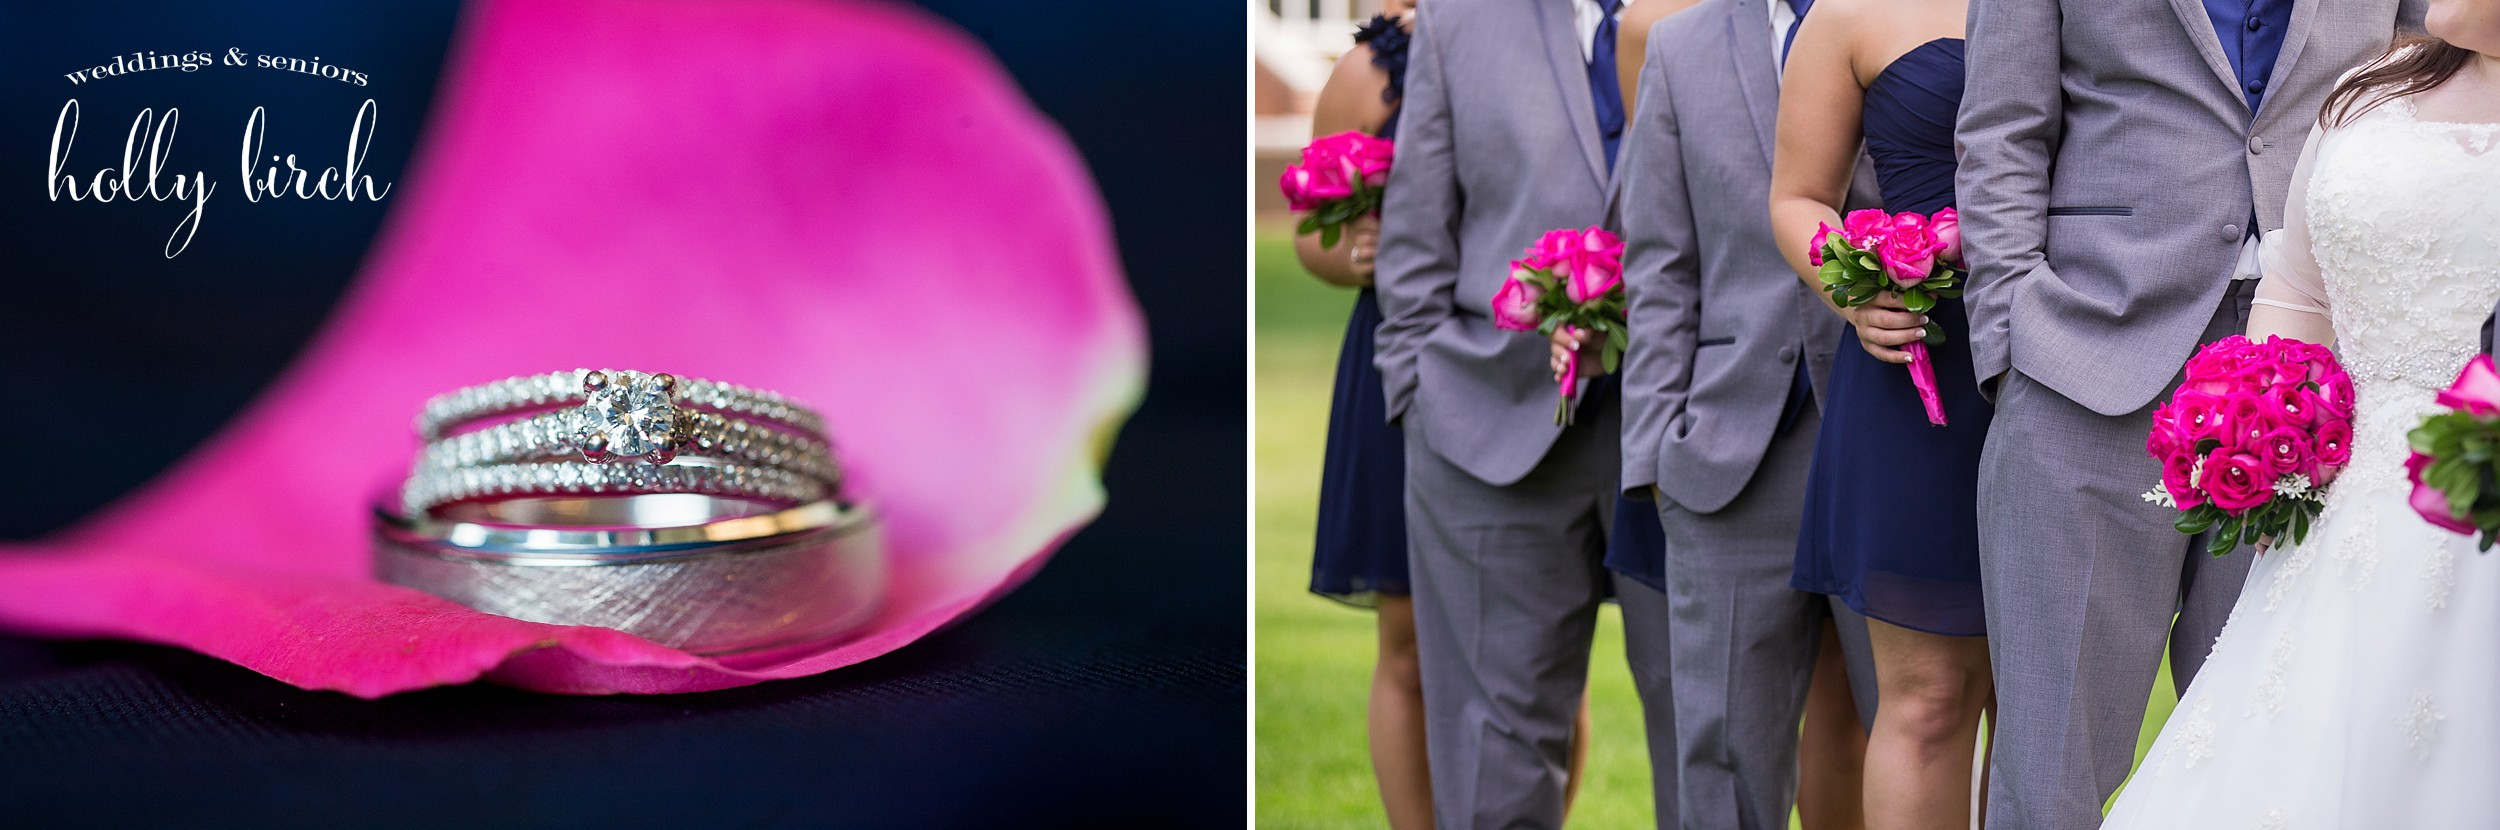 pink navy flowers petals and rings